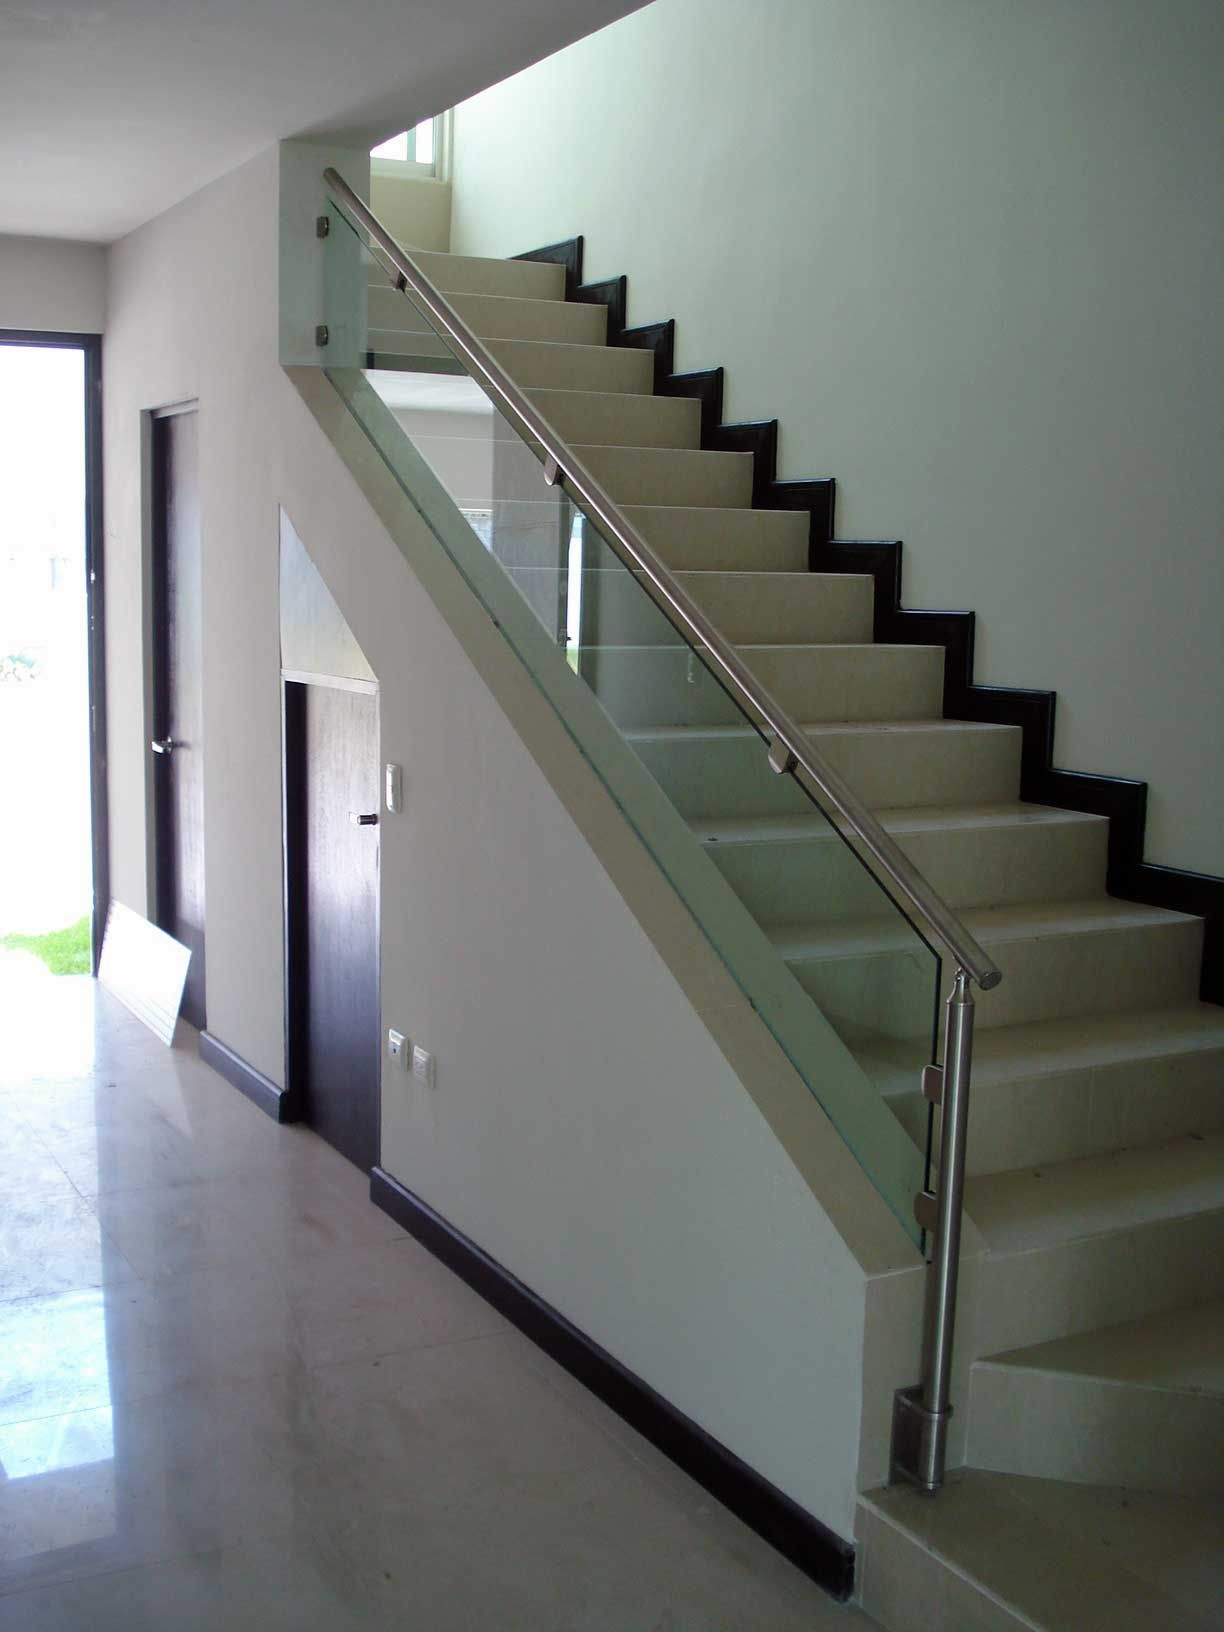 Escalera barandal escaleras en acero inoxidable pinterest staircases house and stairways - Barandales para escaleras interiores ...